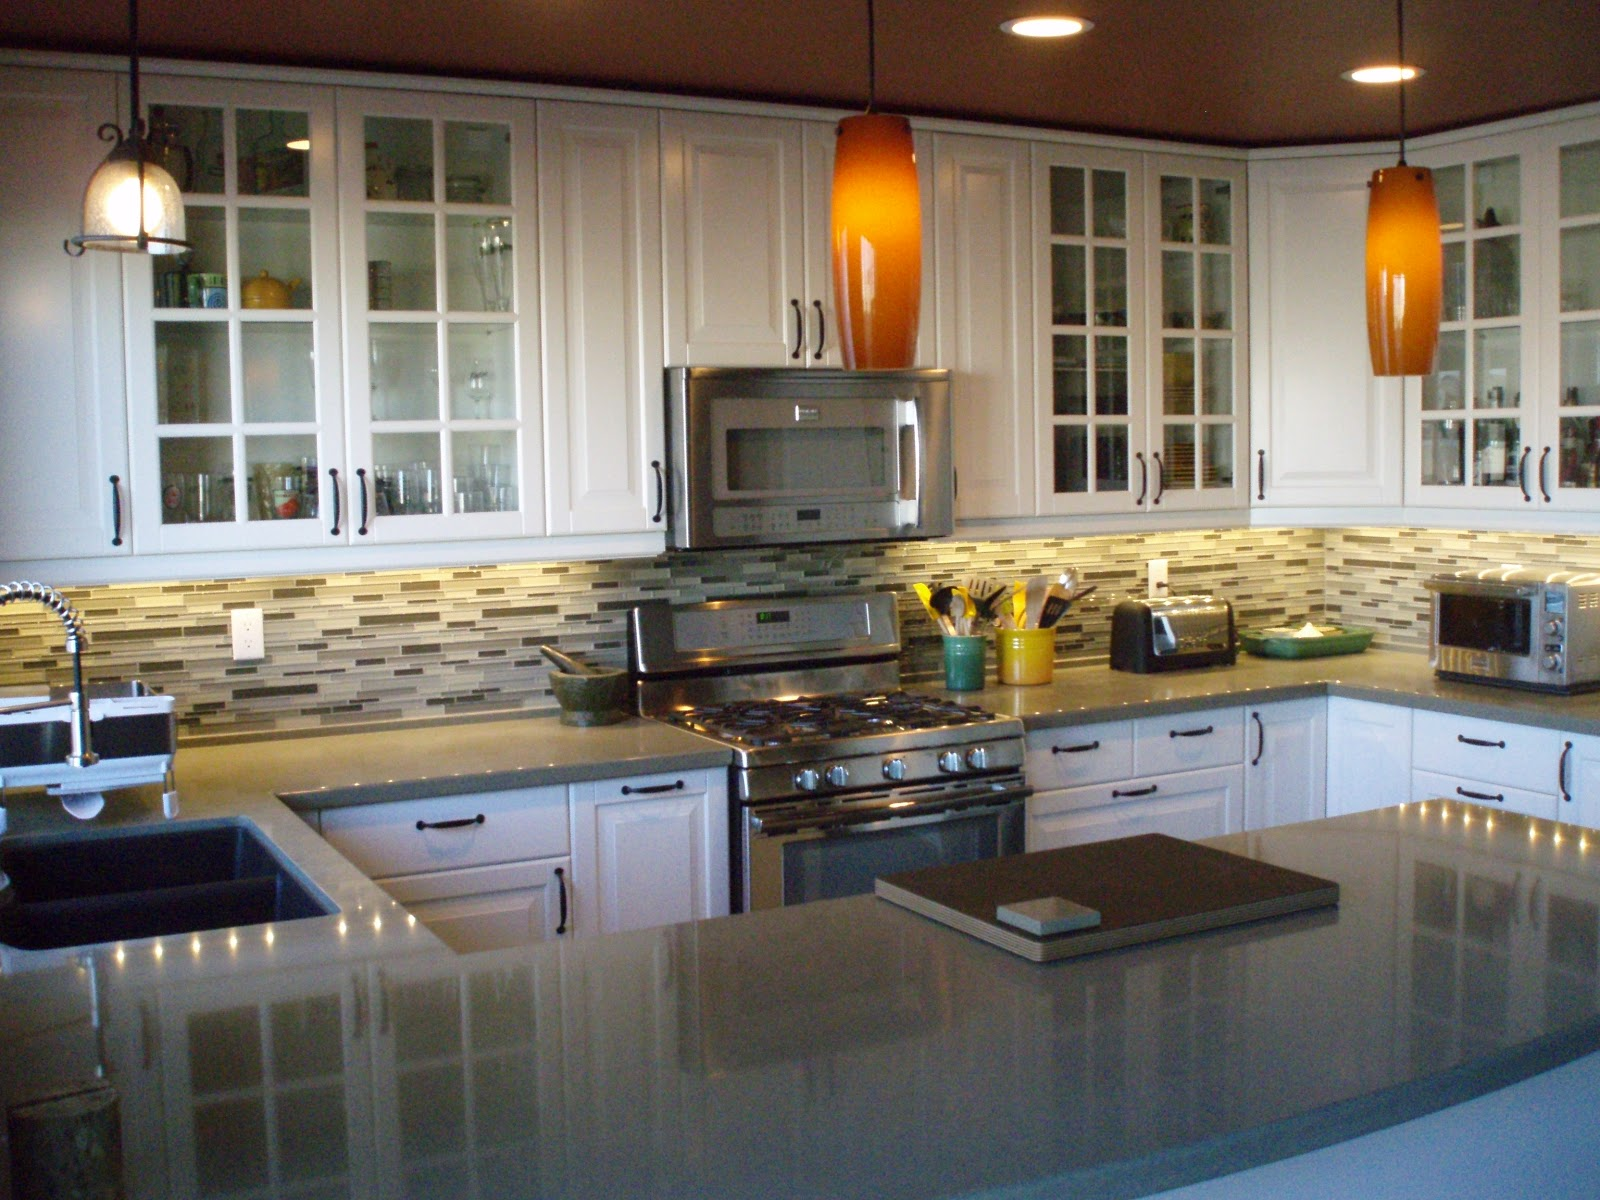 Average Cost For New Kitchen Cabinets Marvelous Cost Of New Kitchen Cabinets 2015